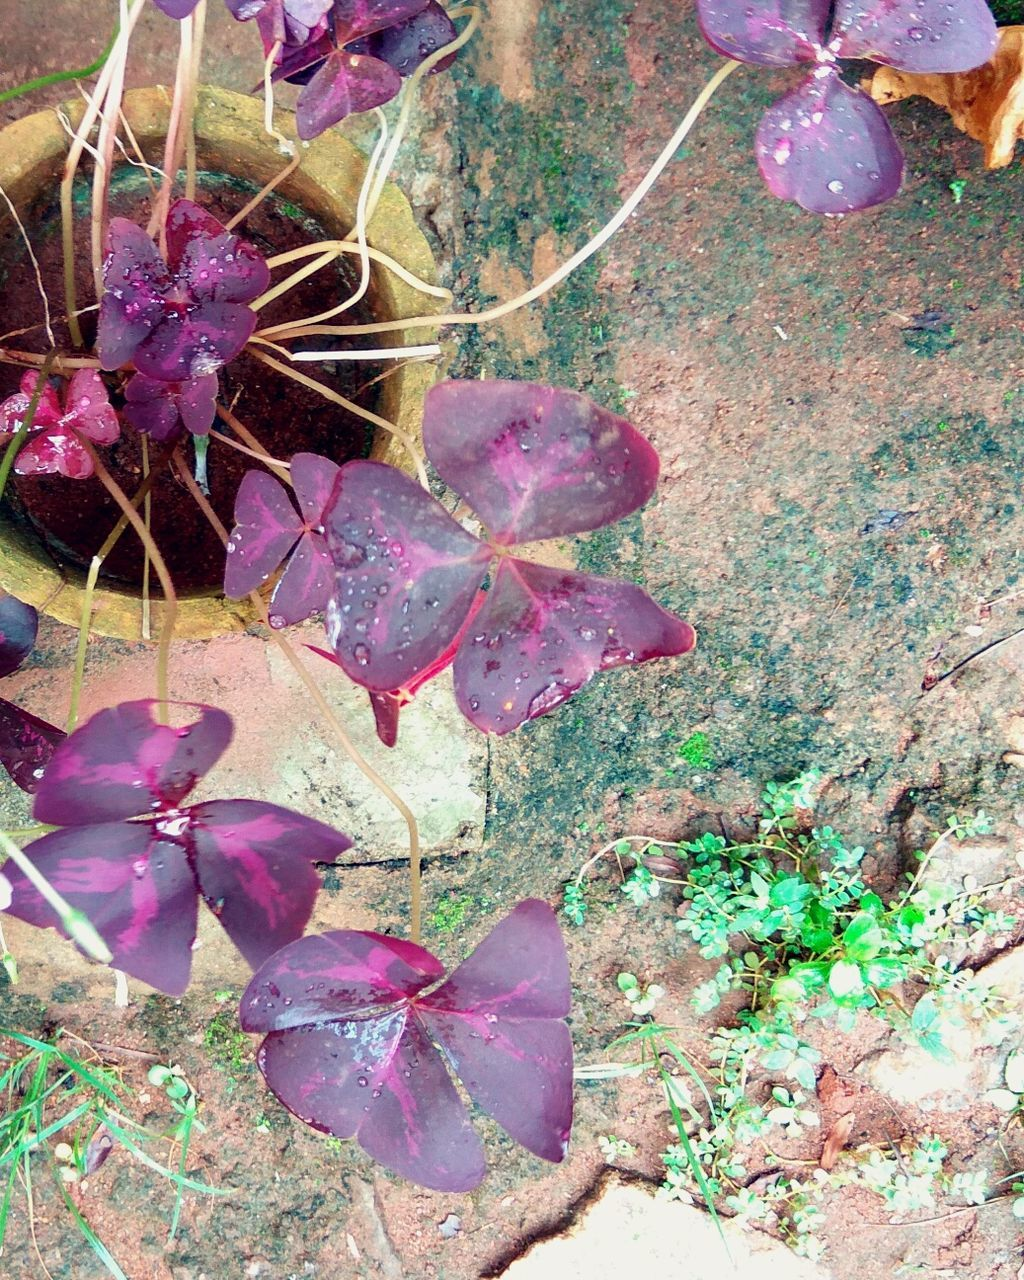 growth, nature, plant, leaf, beauty in nature, purple, no people, outdoors, fragility, flower, day, autumn, close-up